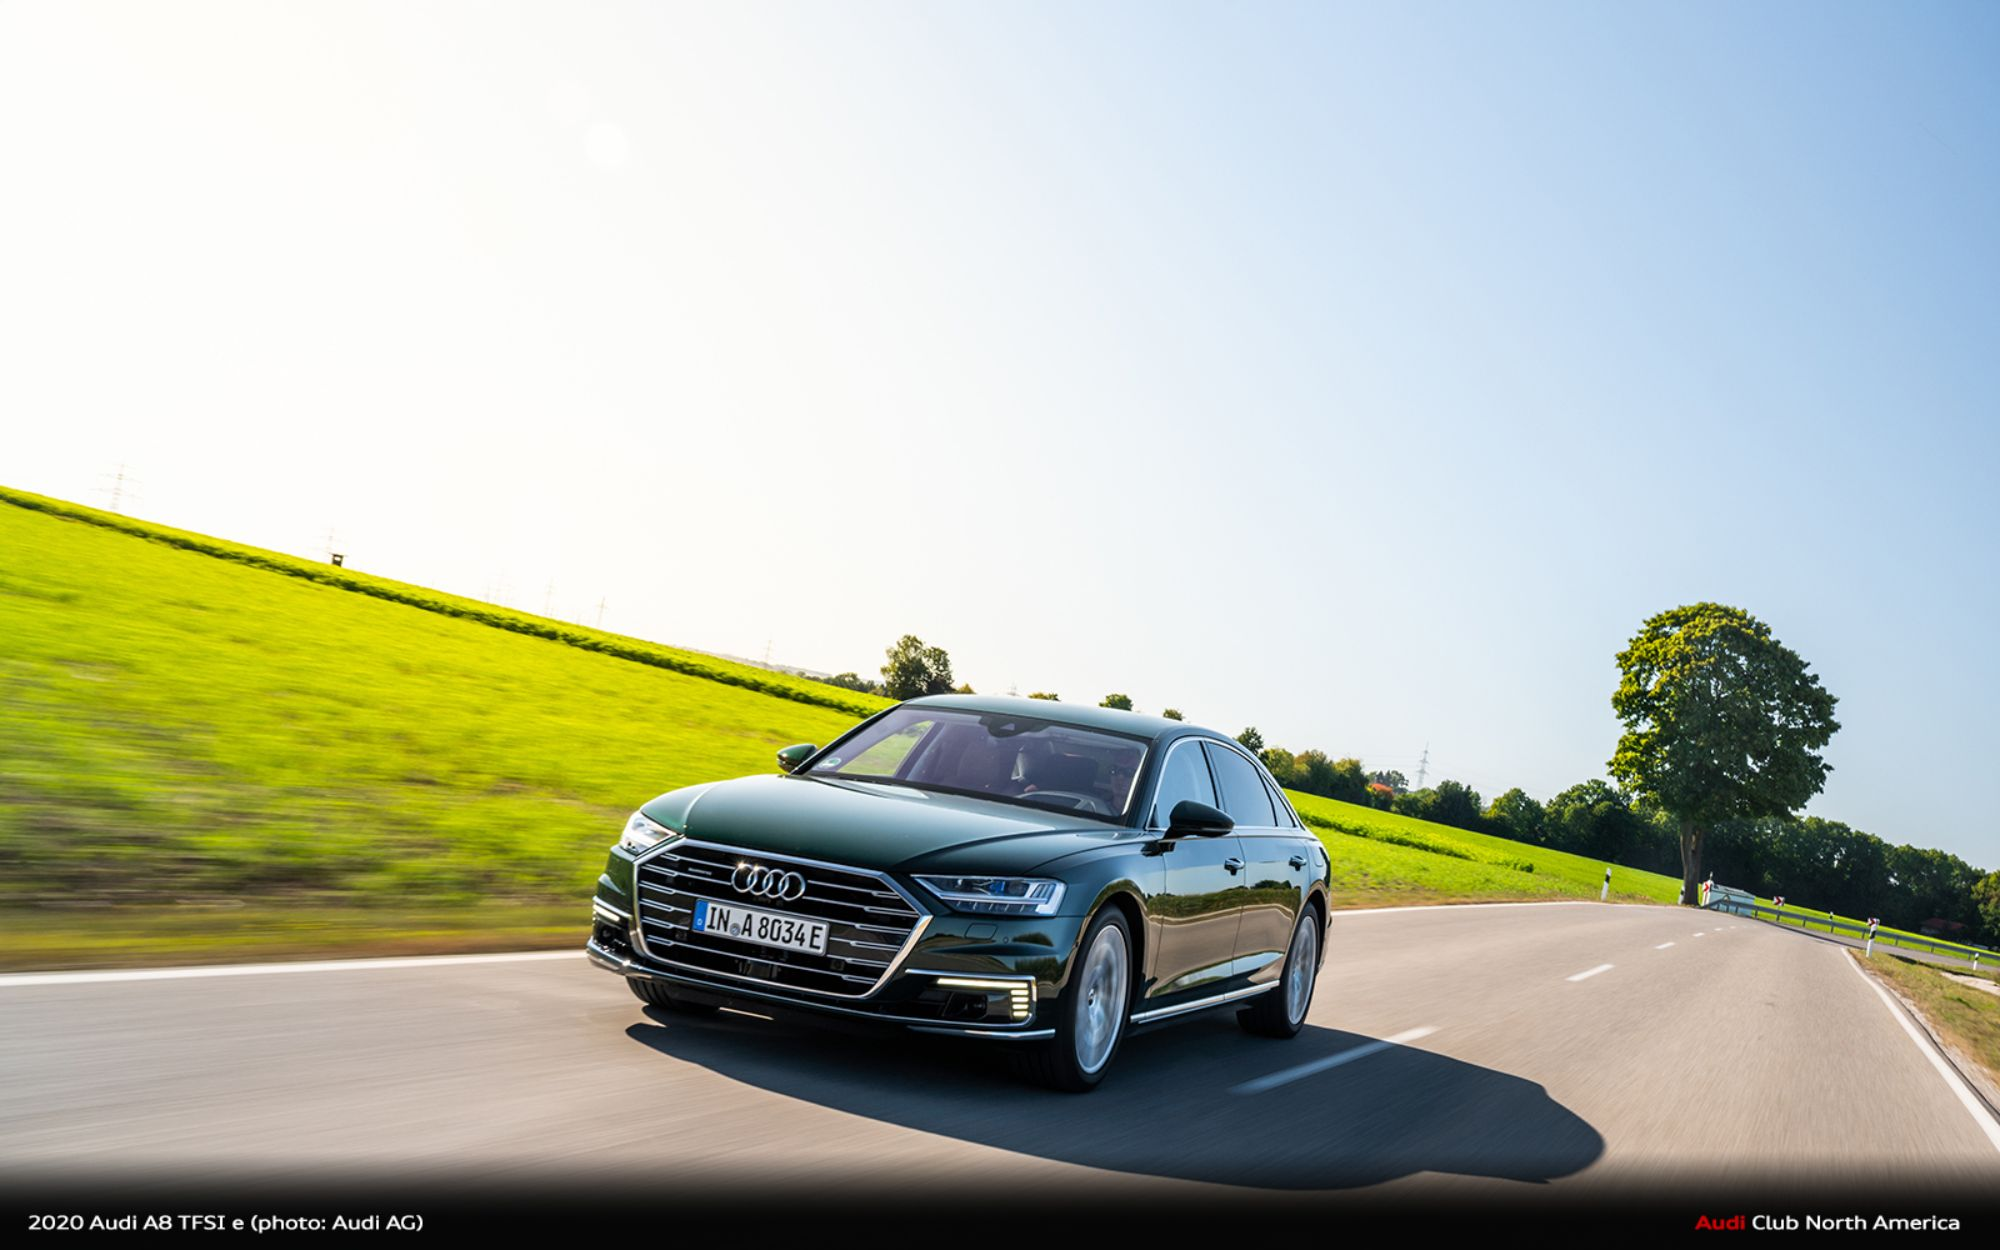 Pricing Announced For 2020 Audi A8 TFSI e: Premium Flagship Sedan Merged With Efficient Plug-In Hybrid Technology